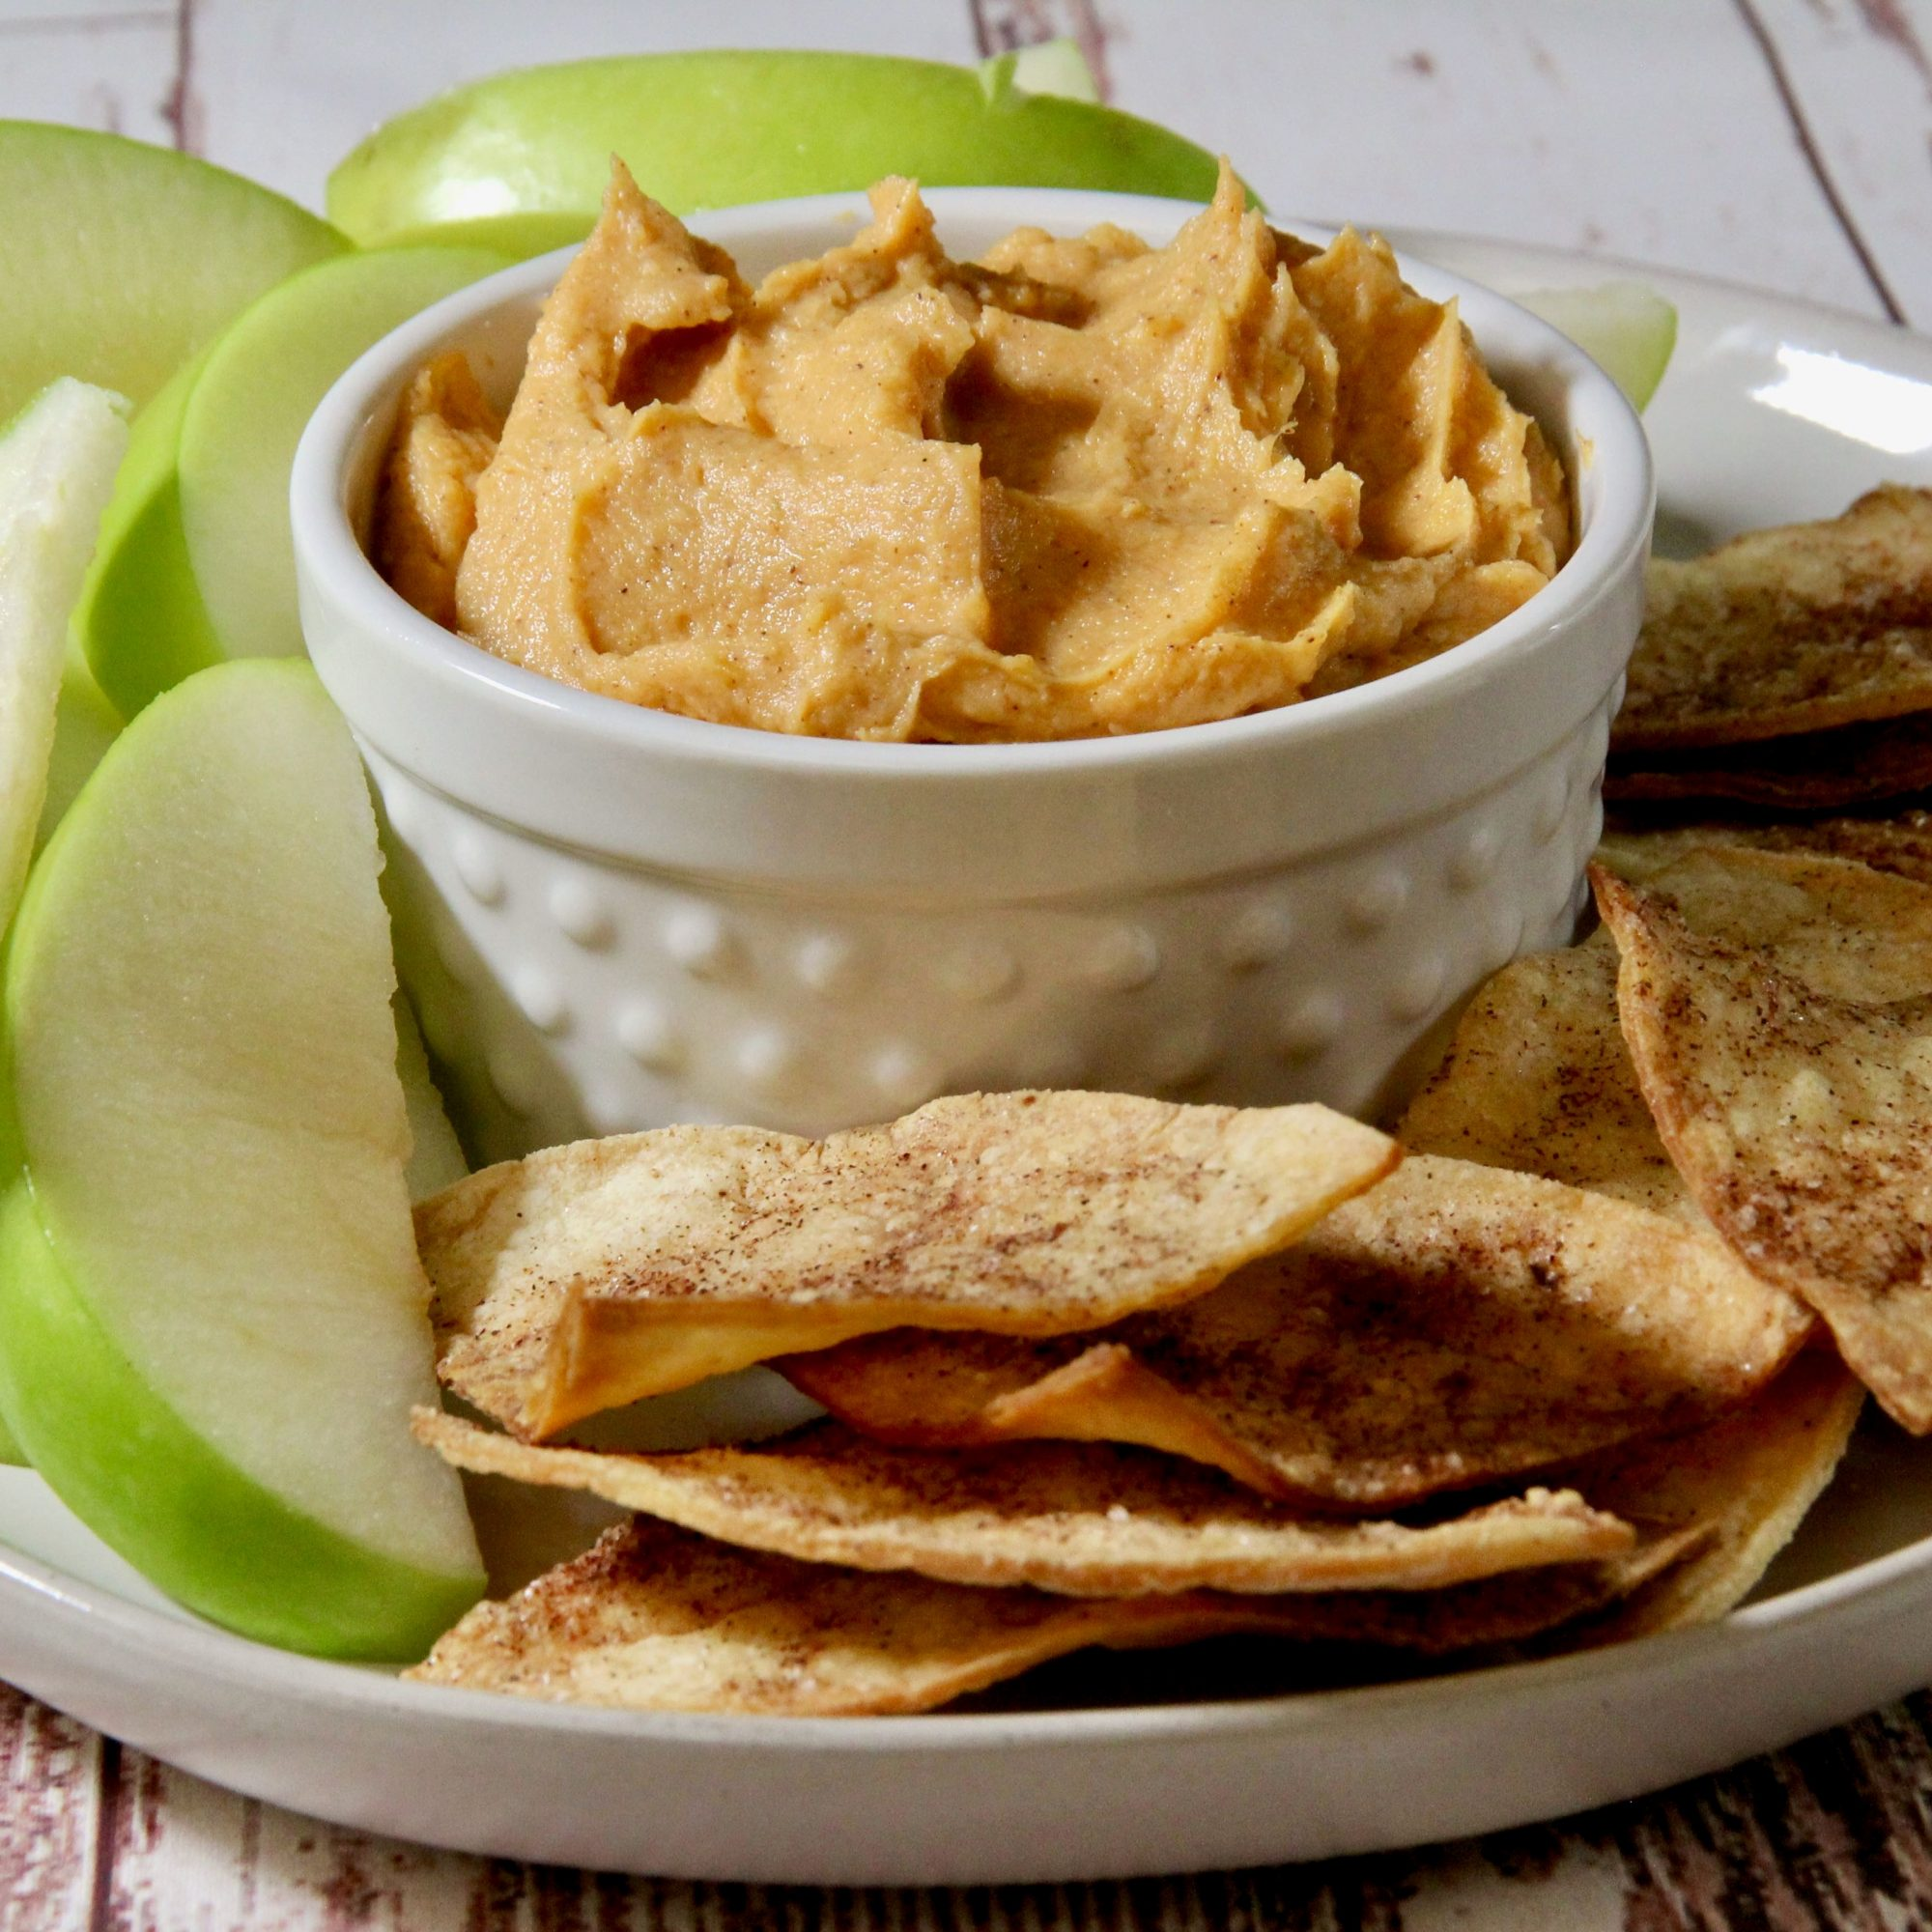 """Mashed sweet potato is whipped up with yogurt, orange juice, peanut butter, and cinnamon to make this clever sweet potato dip to serve with toasted bagels, raisin bread or apple wedges. """"I made it for breakfast for my grandchildren and we all loved it!"""" says reviewer Deborah Wooten."""